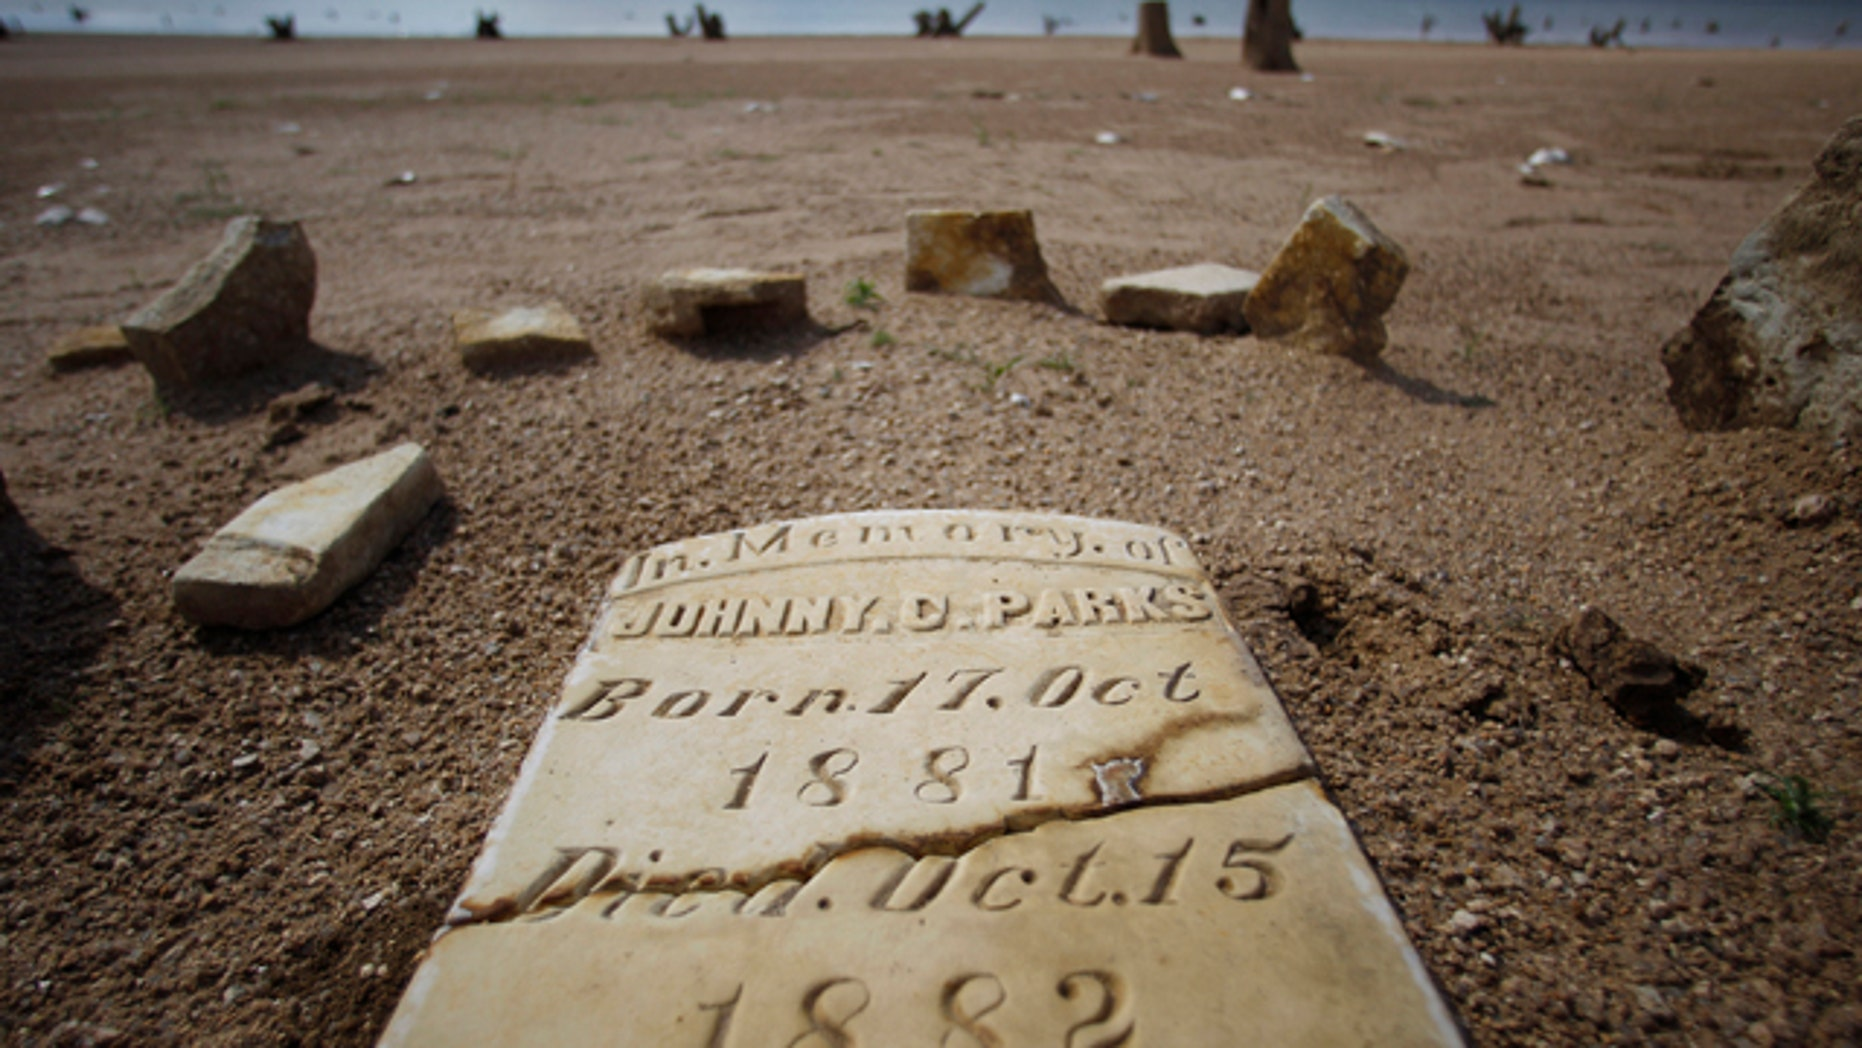 Oct. 5, 2011: A child's grave site, normally at least 20 to 30 feet underwater, has joined other remnants of old Bluffton, Texas, resurfacing on the now dry, sandy lake near Bluffton, as the Texas drought shrinks the state's largest inland lake.